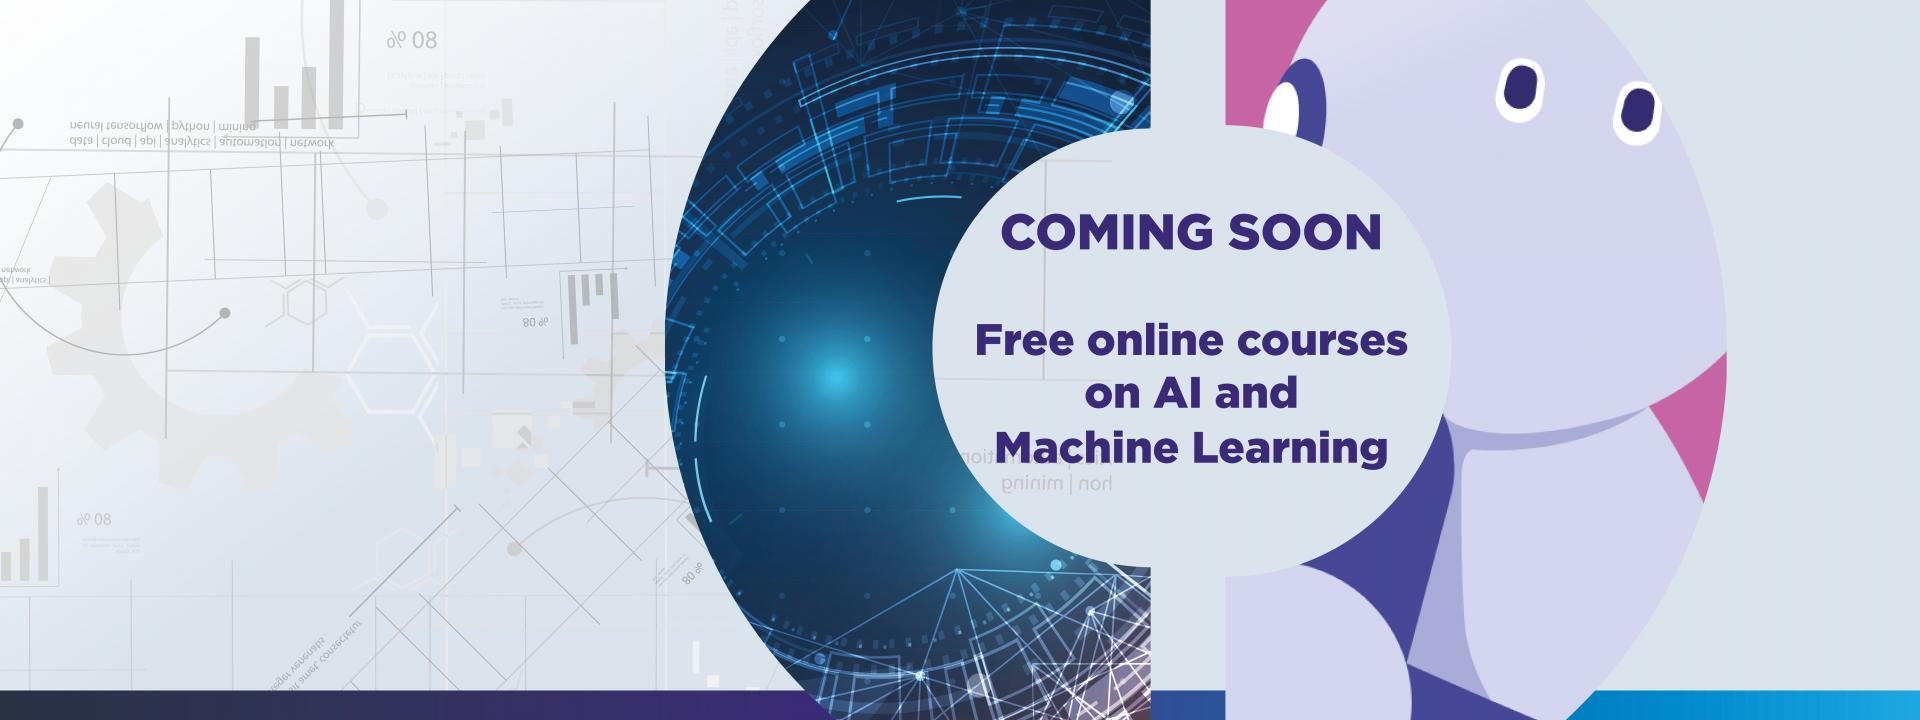 Launch of Luxembourg's Elements of AI Course